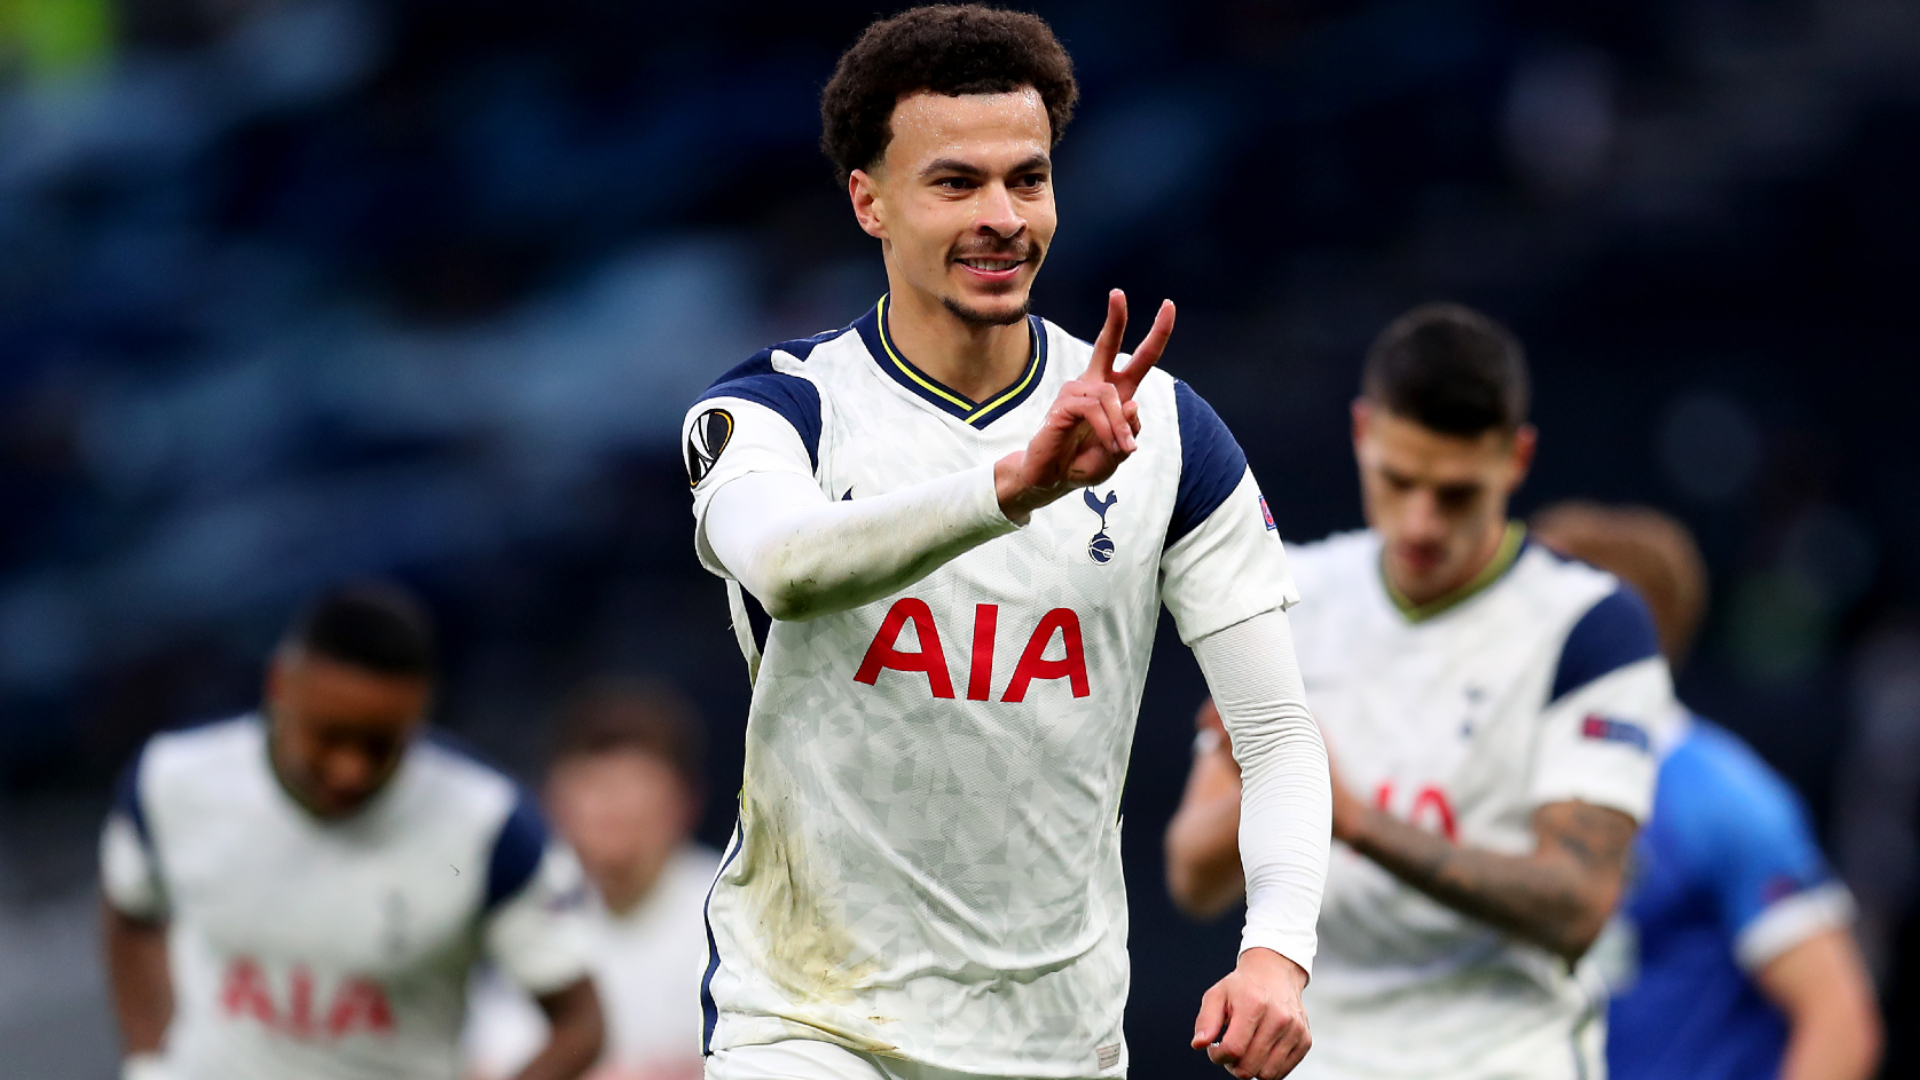 Tottenham 4-0 Wolfsberger (8-1 agg): Sensational Alli goal sets up cruise into last 16